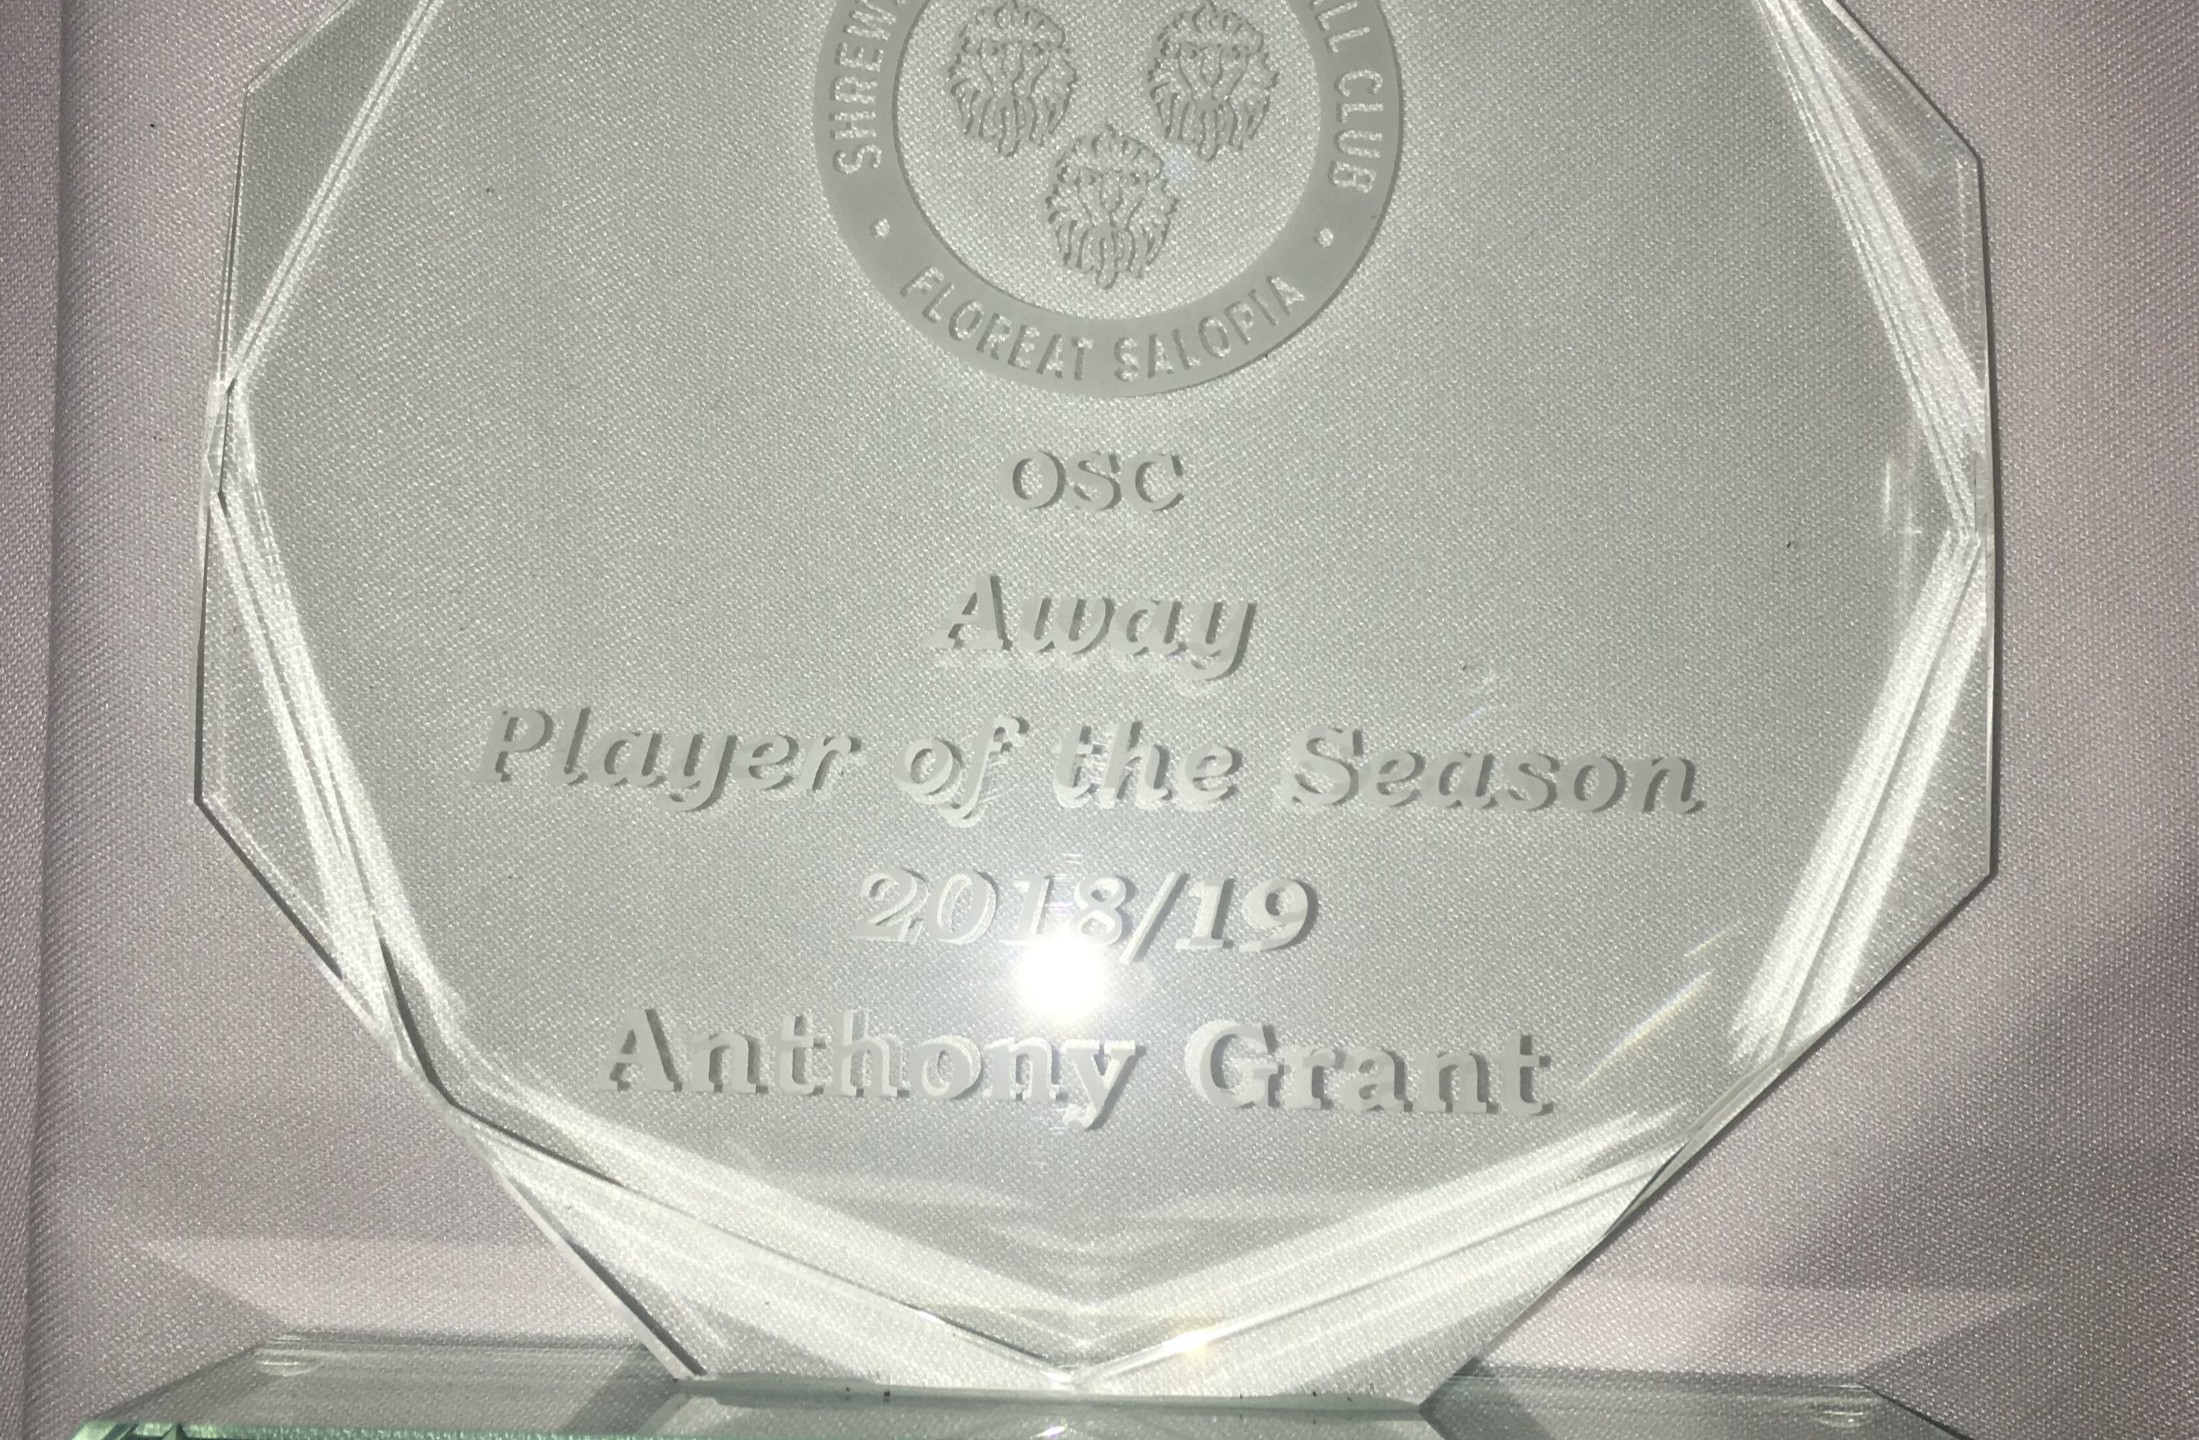 Away Player of the Year